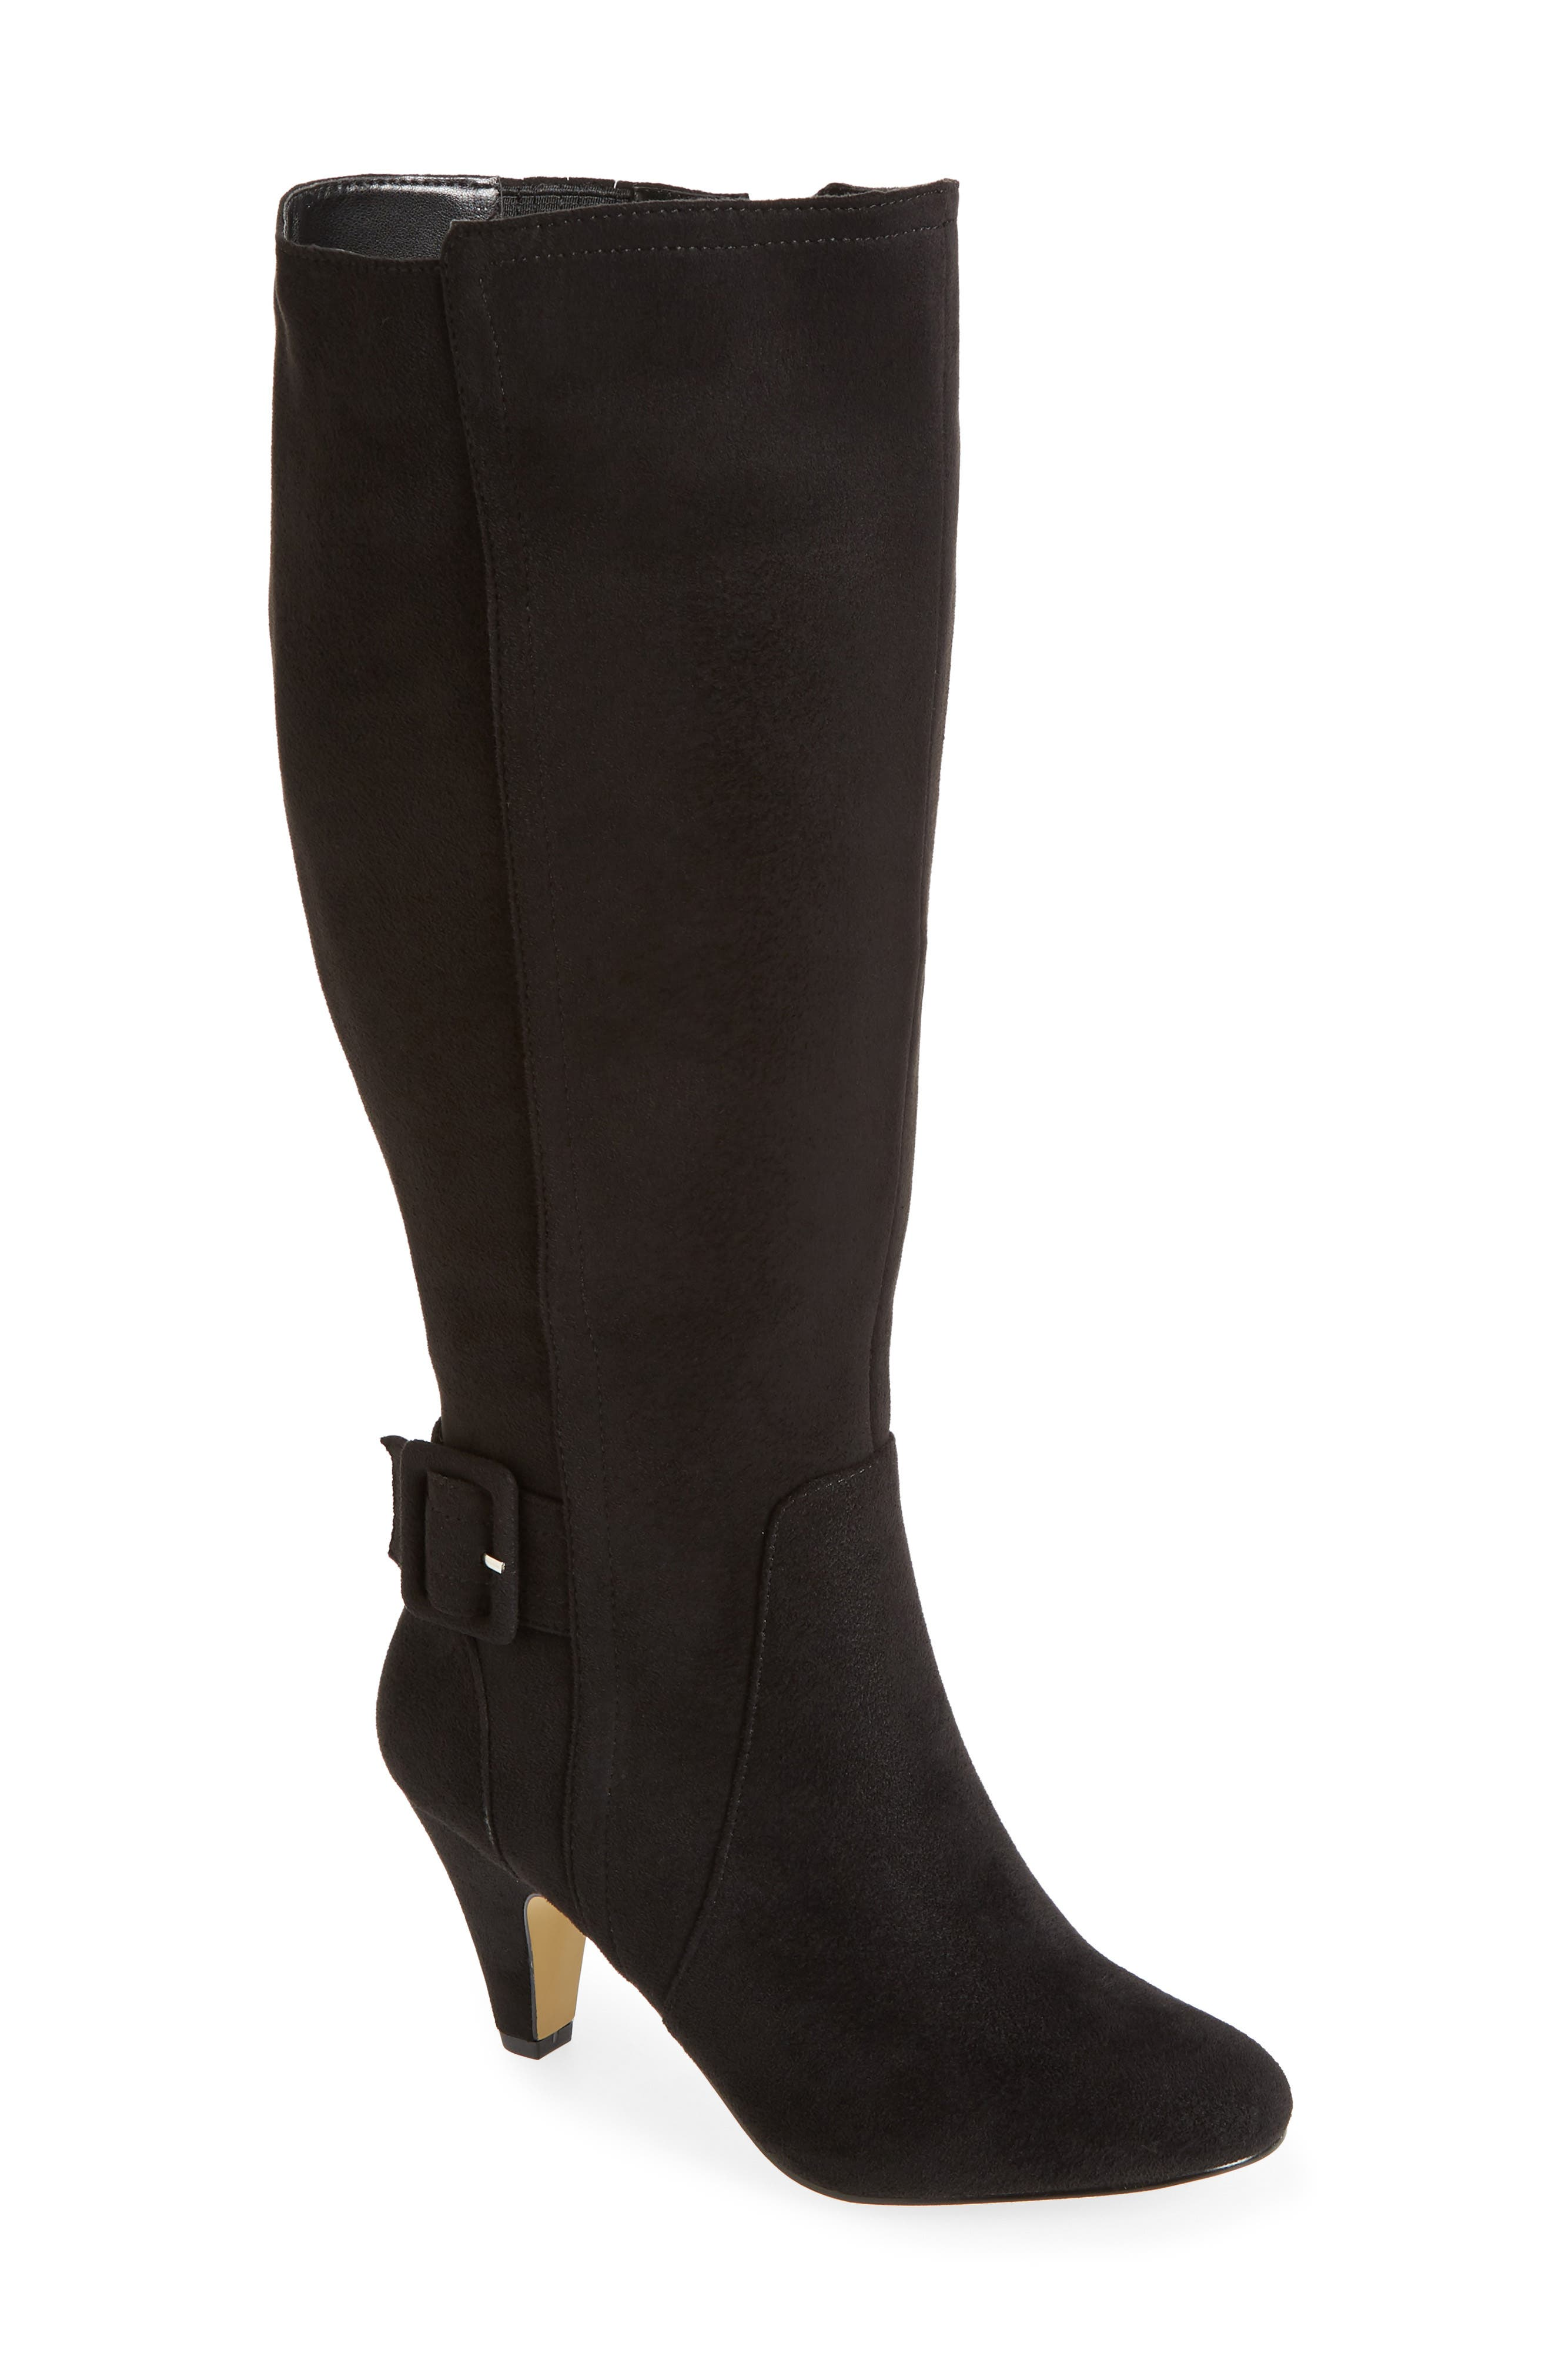 A slim, belted strap with a covered buckle wraps the ankle of a sleek, versatile tall boot styled with an almond toe and graceful sculpted heel. Style Name: Bella Vita Troy Ii Knee High Boot (Women) (Wide Calf). Style Number: 5918938. Available in stores.